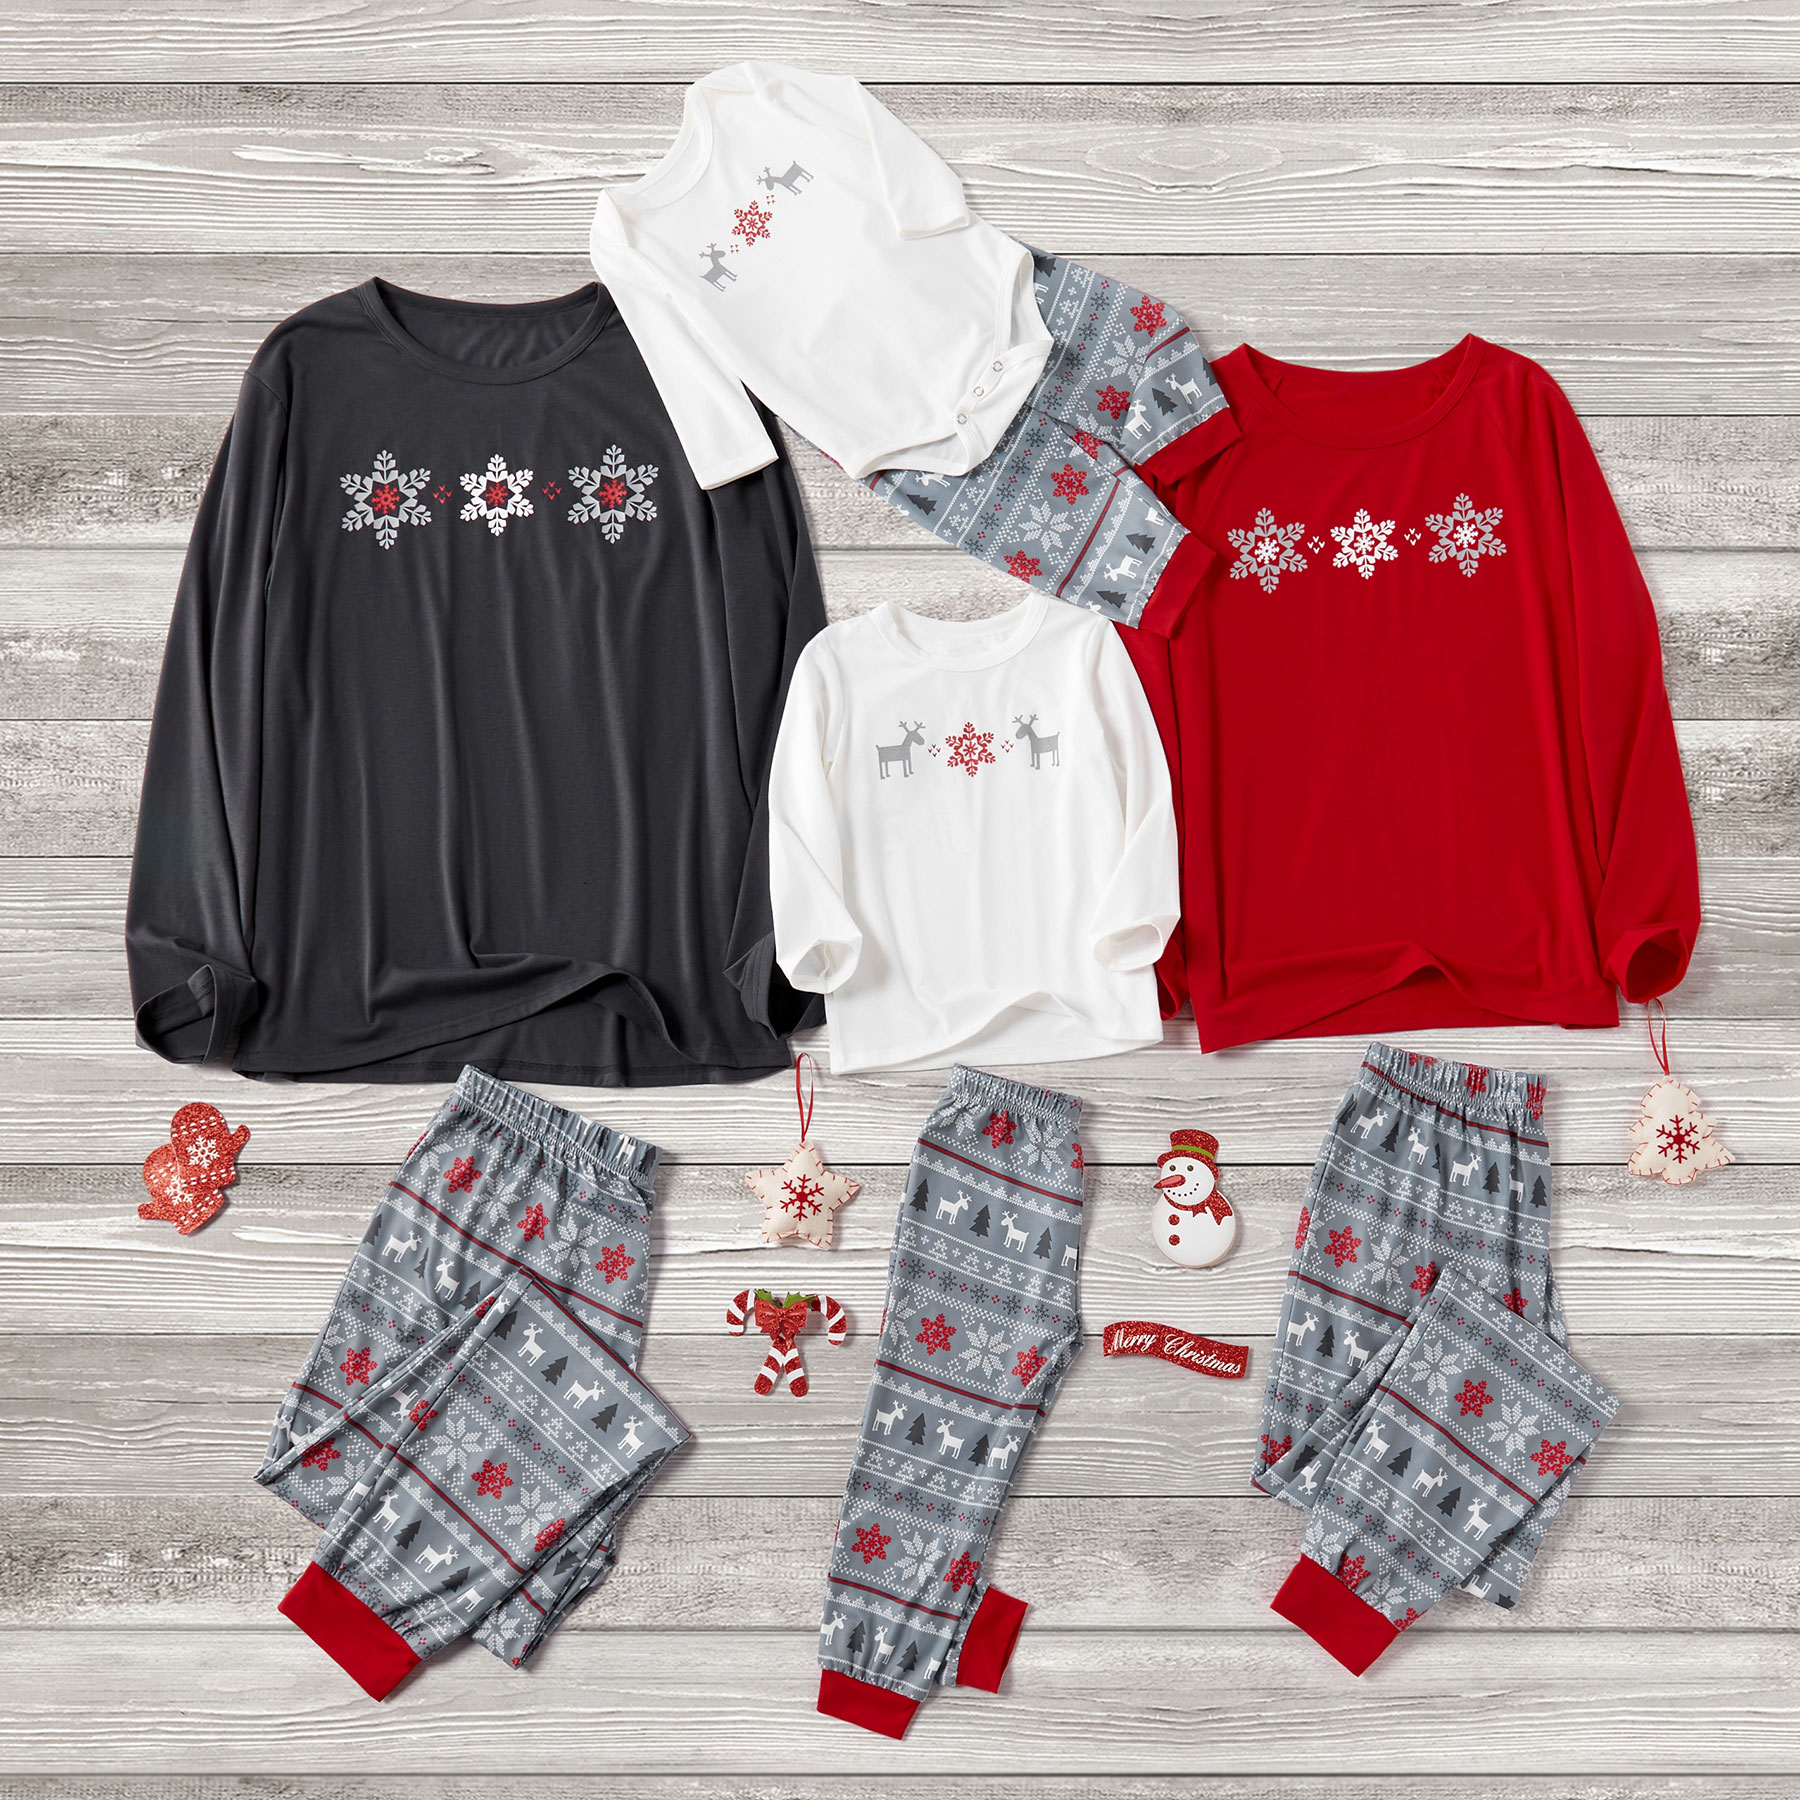 Family Matching Snowflake Top and Reindeer Patterned Pants Pajamas Set